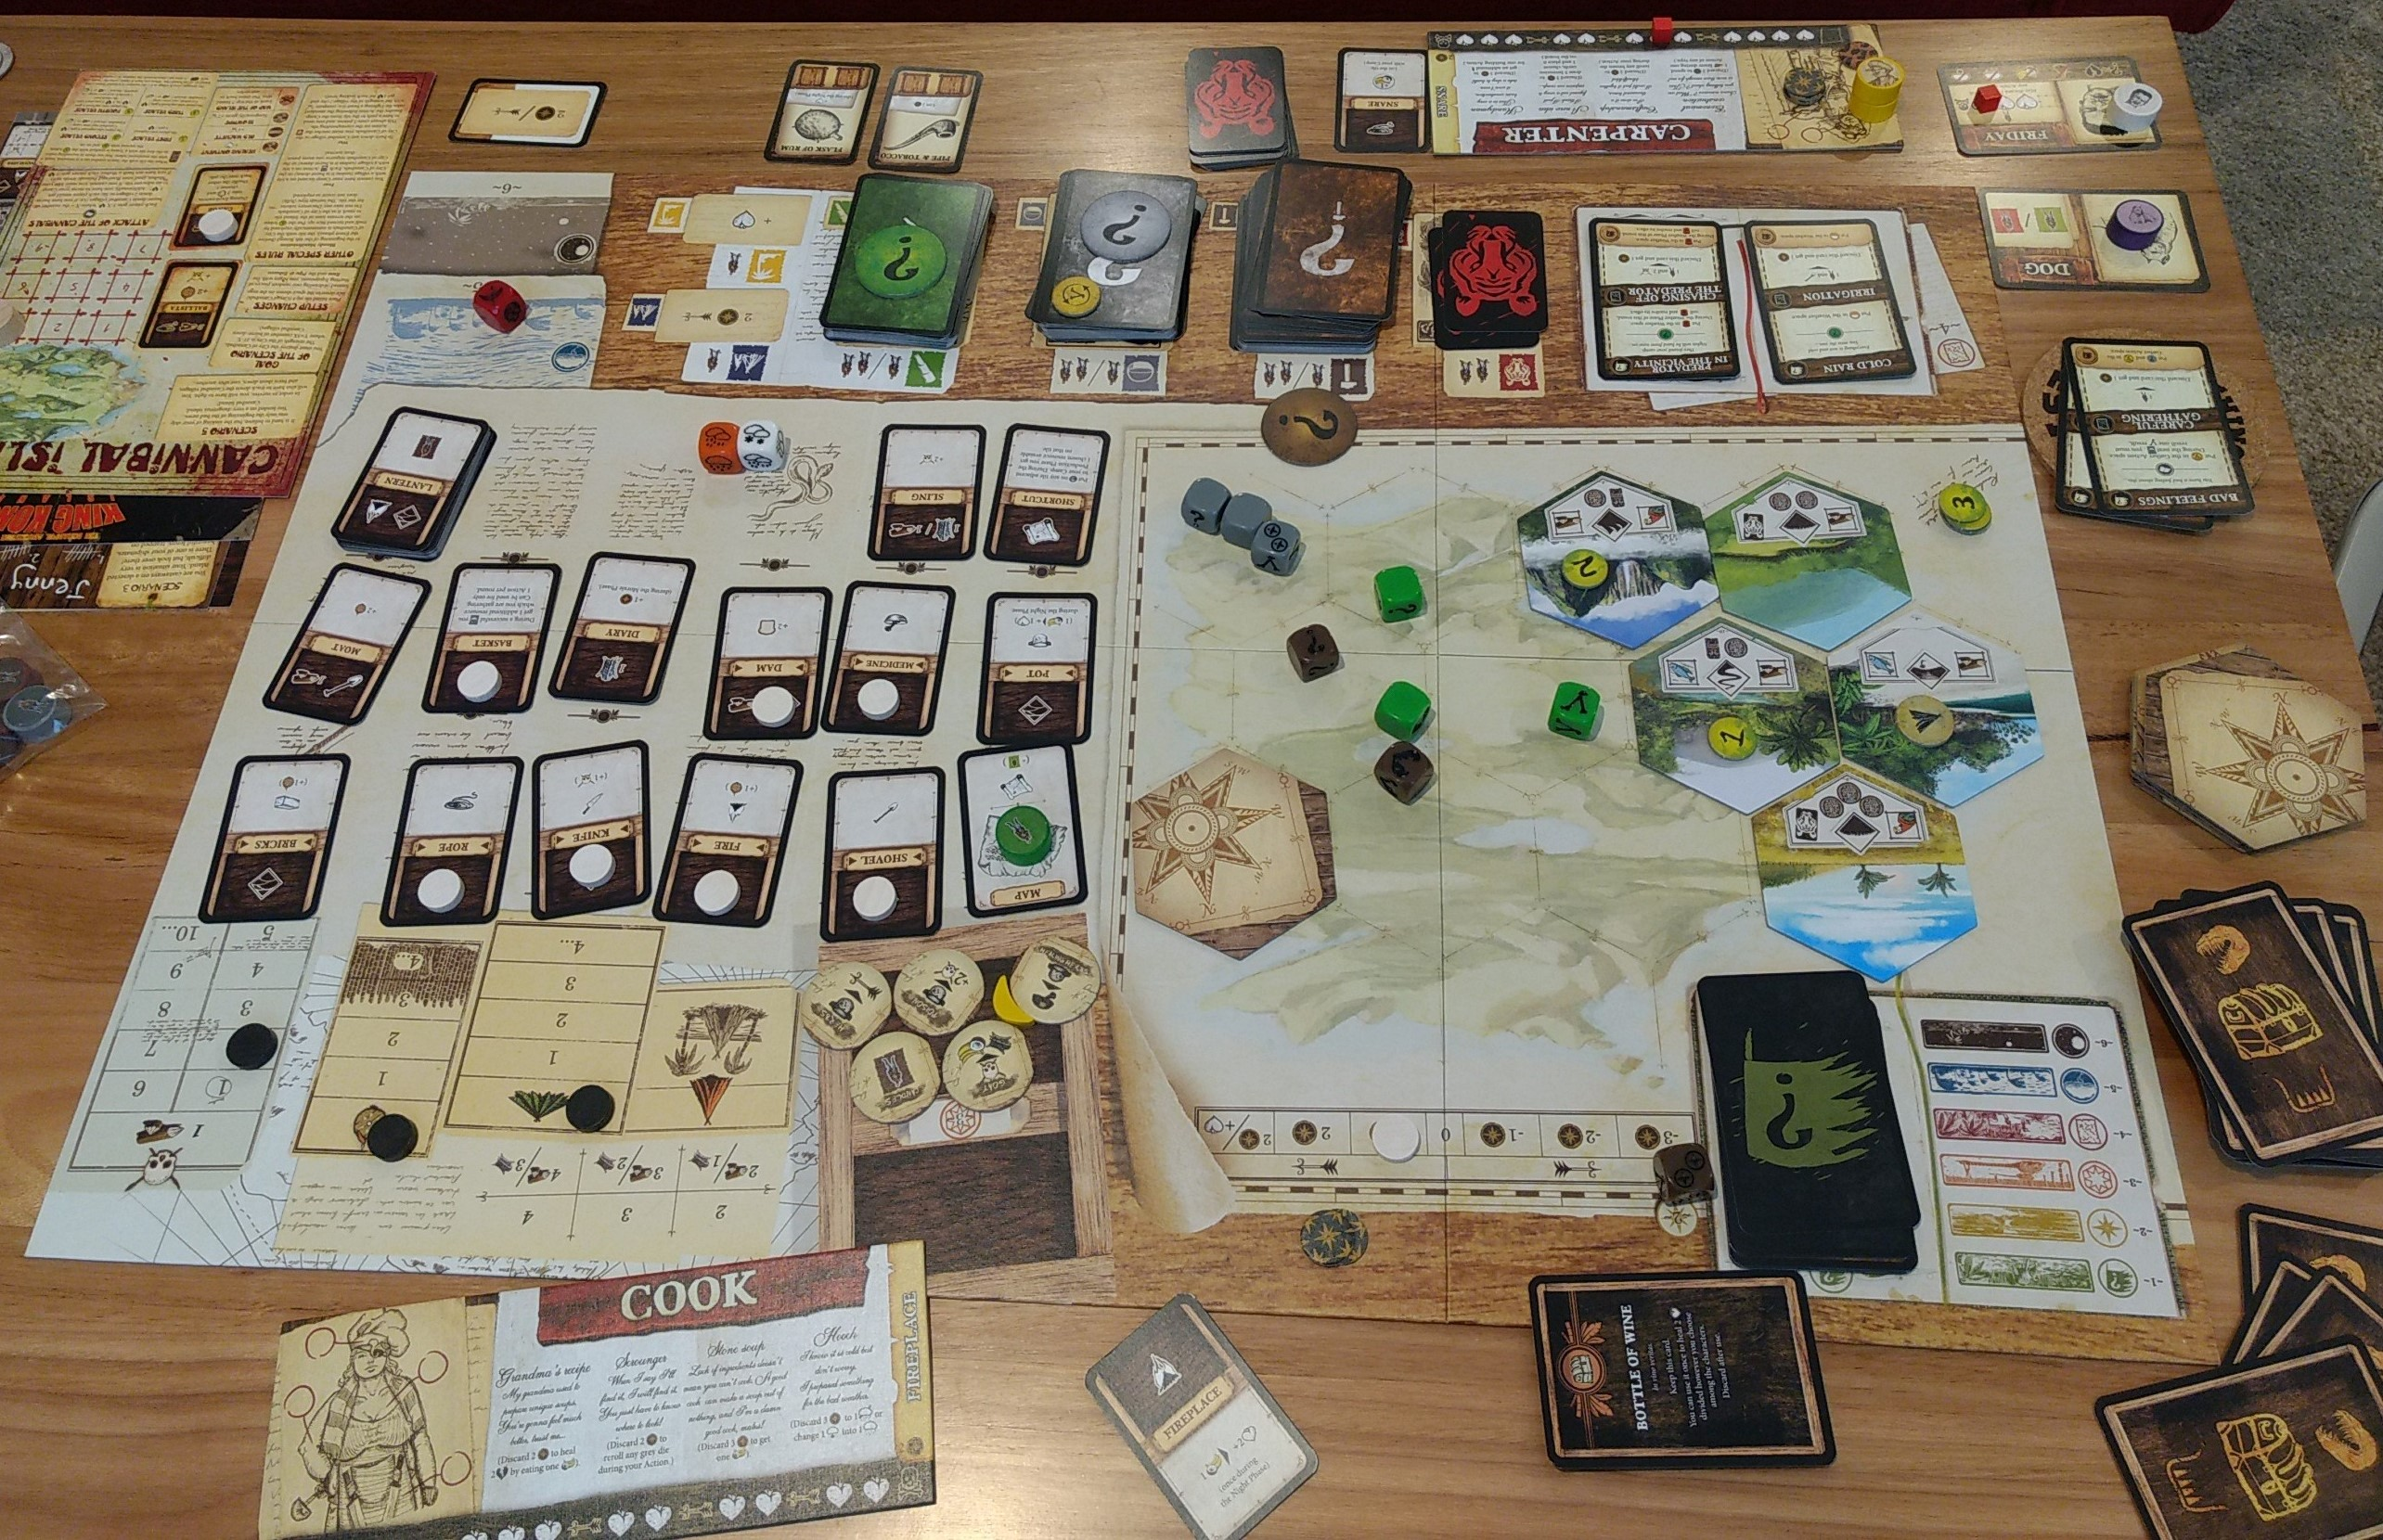 r2r-board-game-review-robinson-crusoe-cook-view